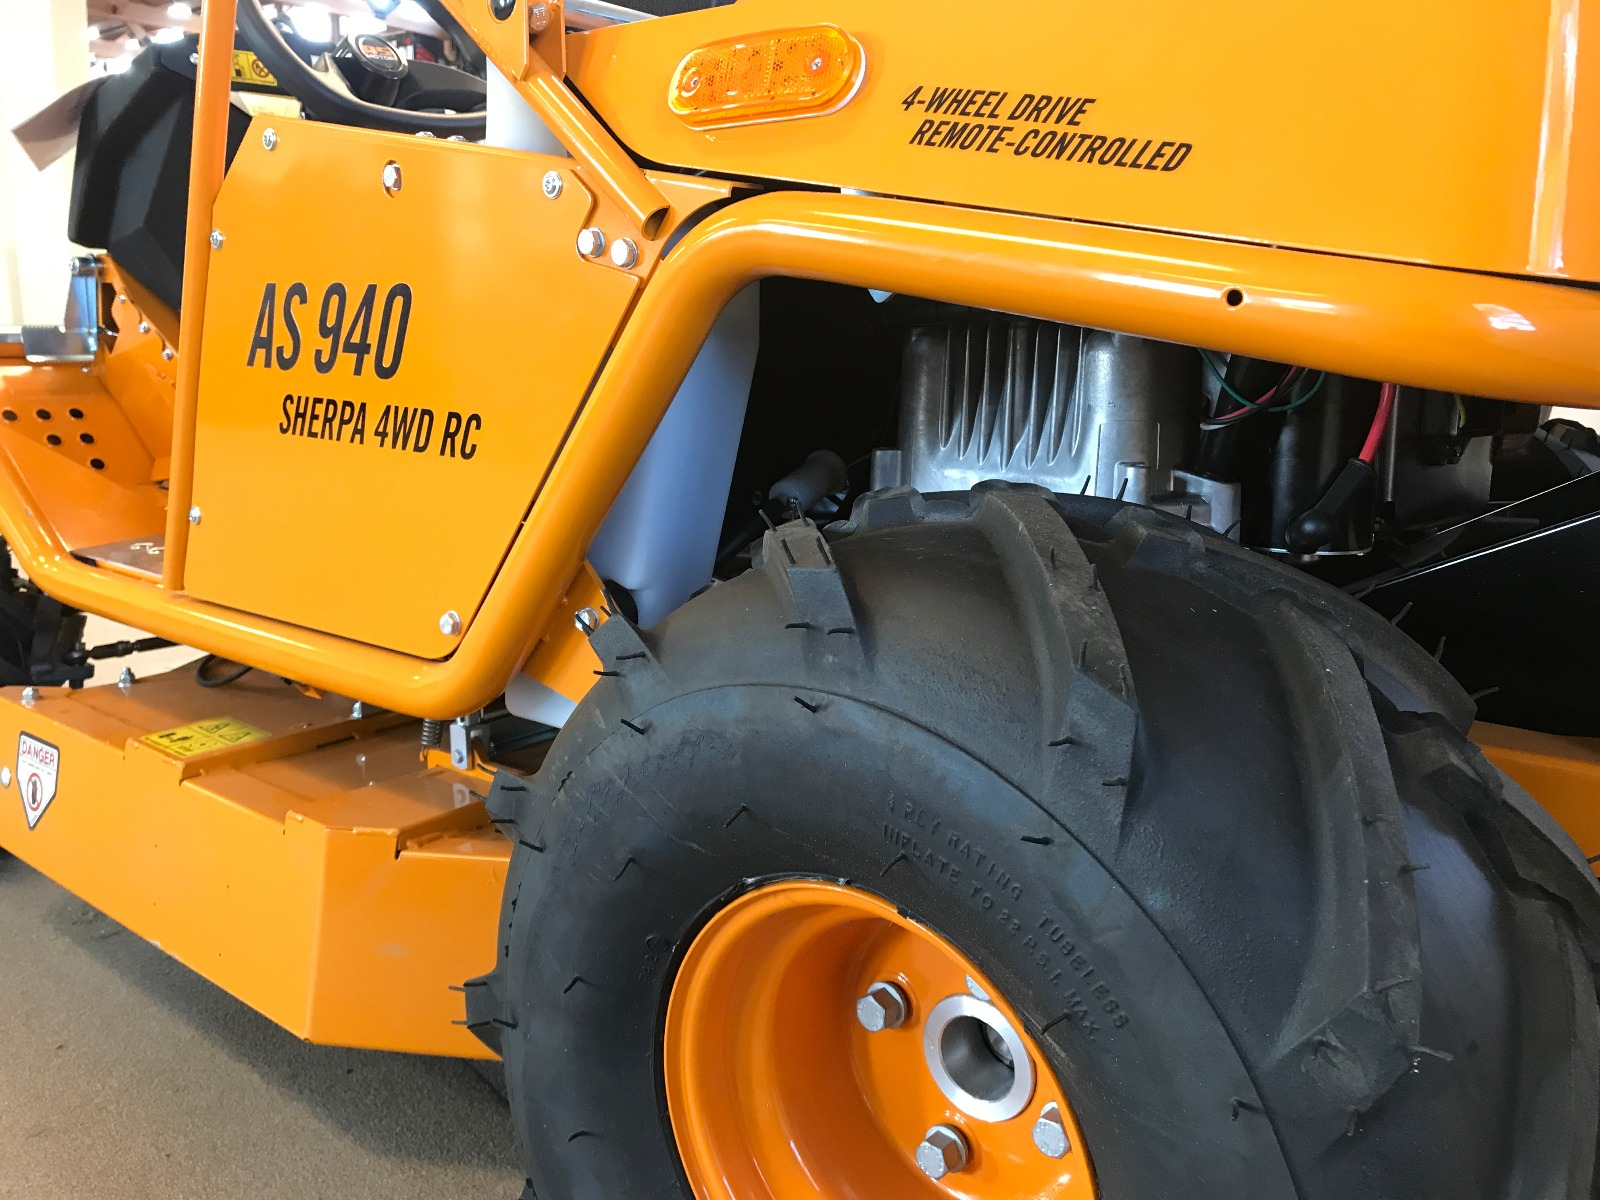 AS 940 Sherpa RC